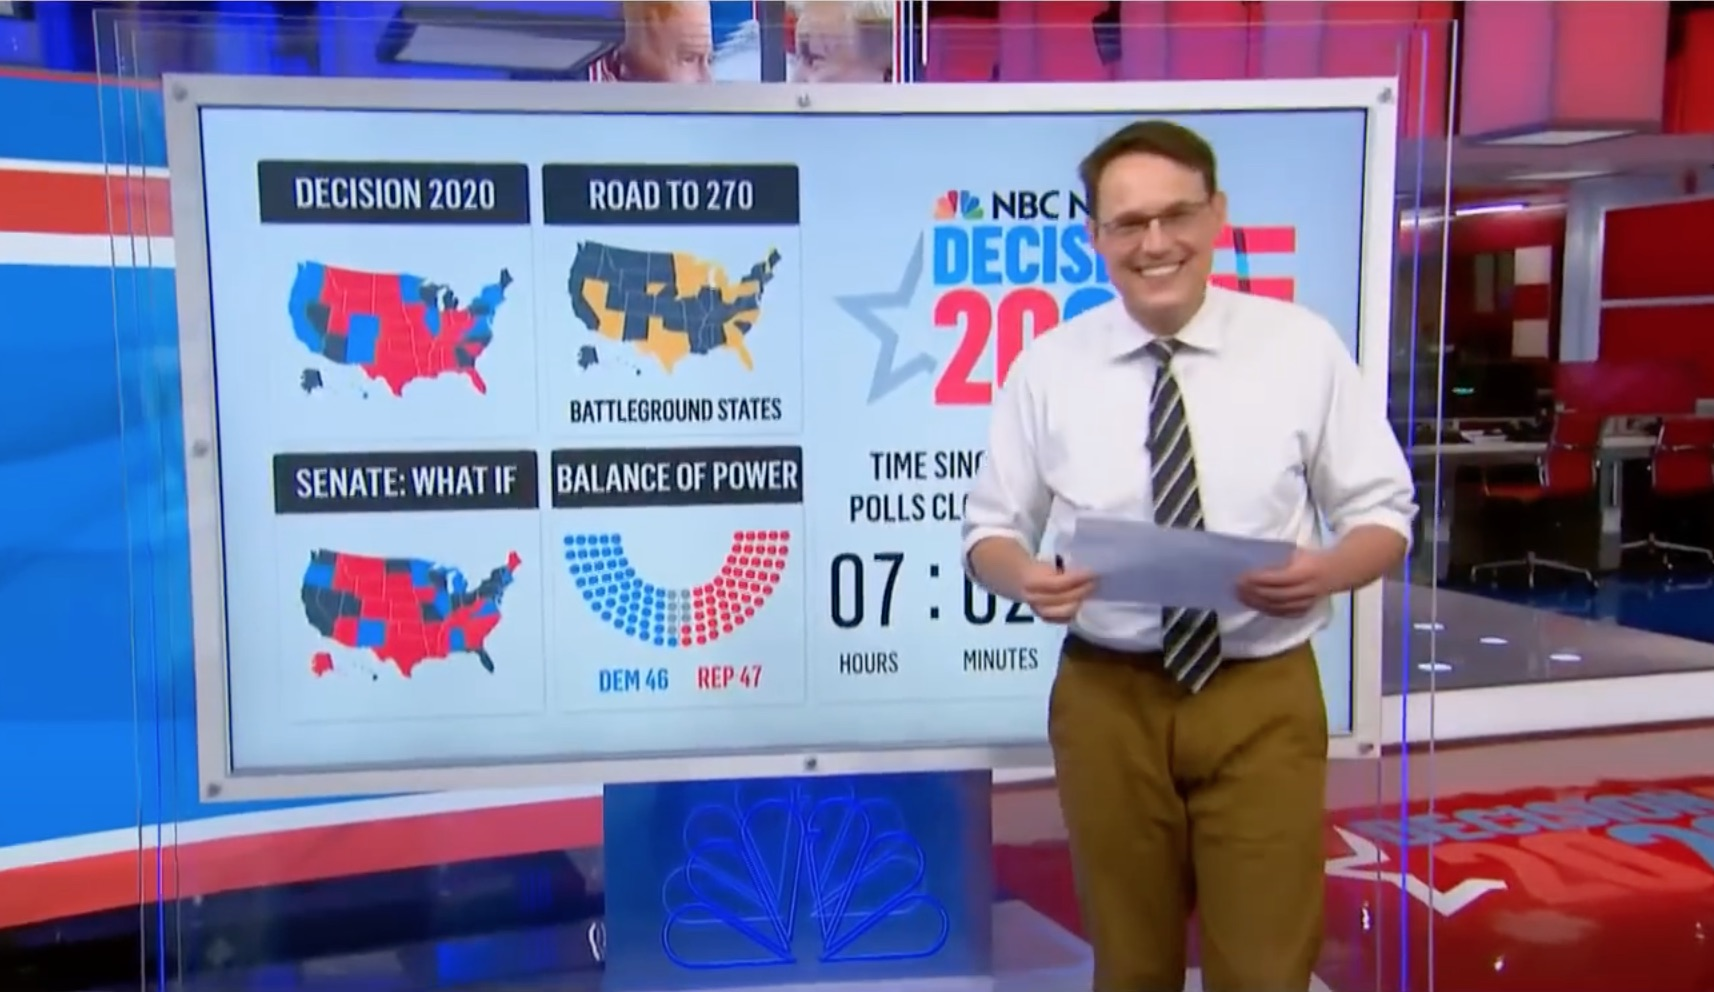 """With the hashtag #TrackingKornacki as well as nicknames """"map daddy"""" and """"chart-throb,"""" viewers stirred up a tweet storm about Kornacki and his khaki pants."""